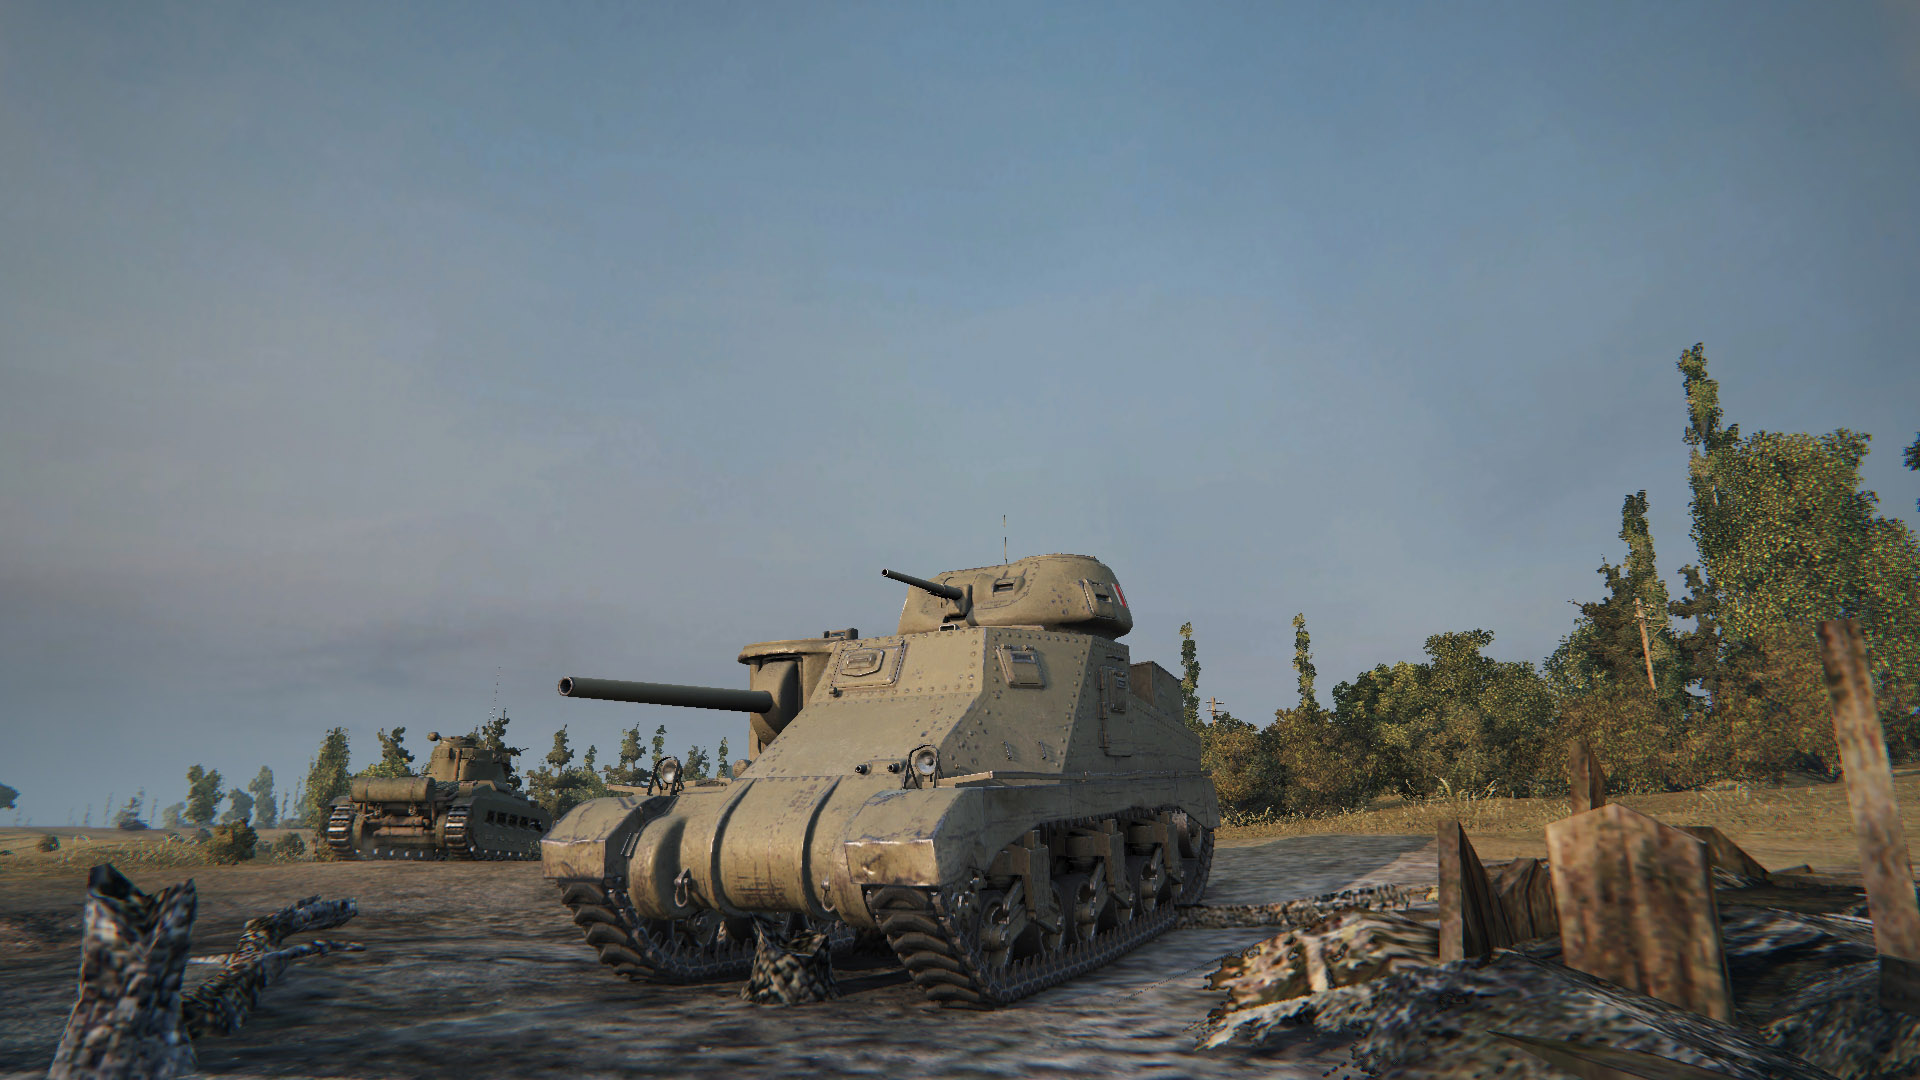 The British version of the M3, the Grant, is also named after an American general, but features a slightly lower turret and can mount the 6-pdr gun.